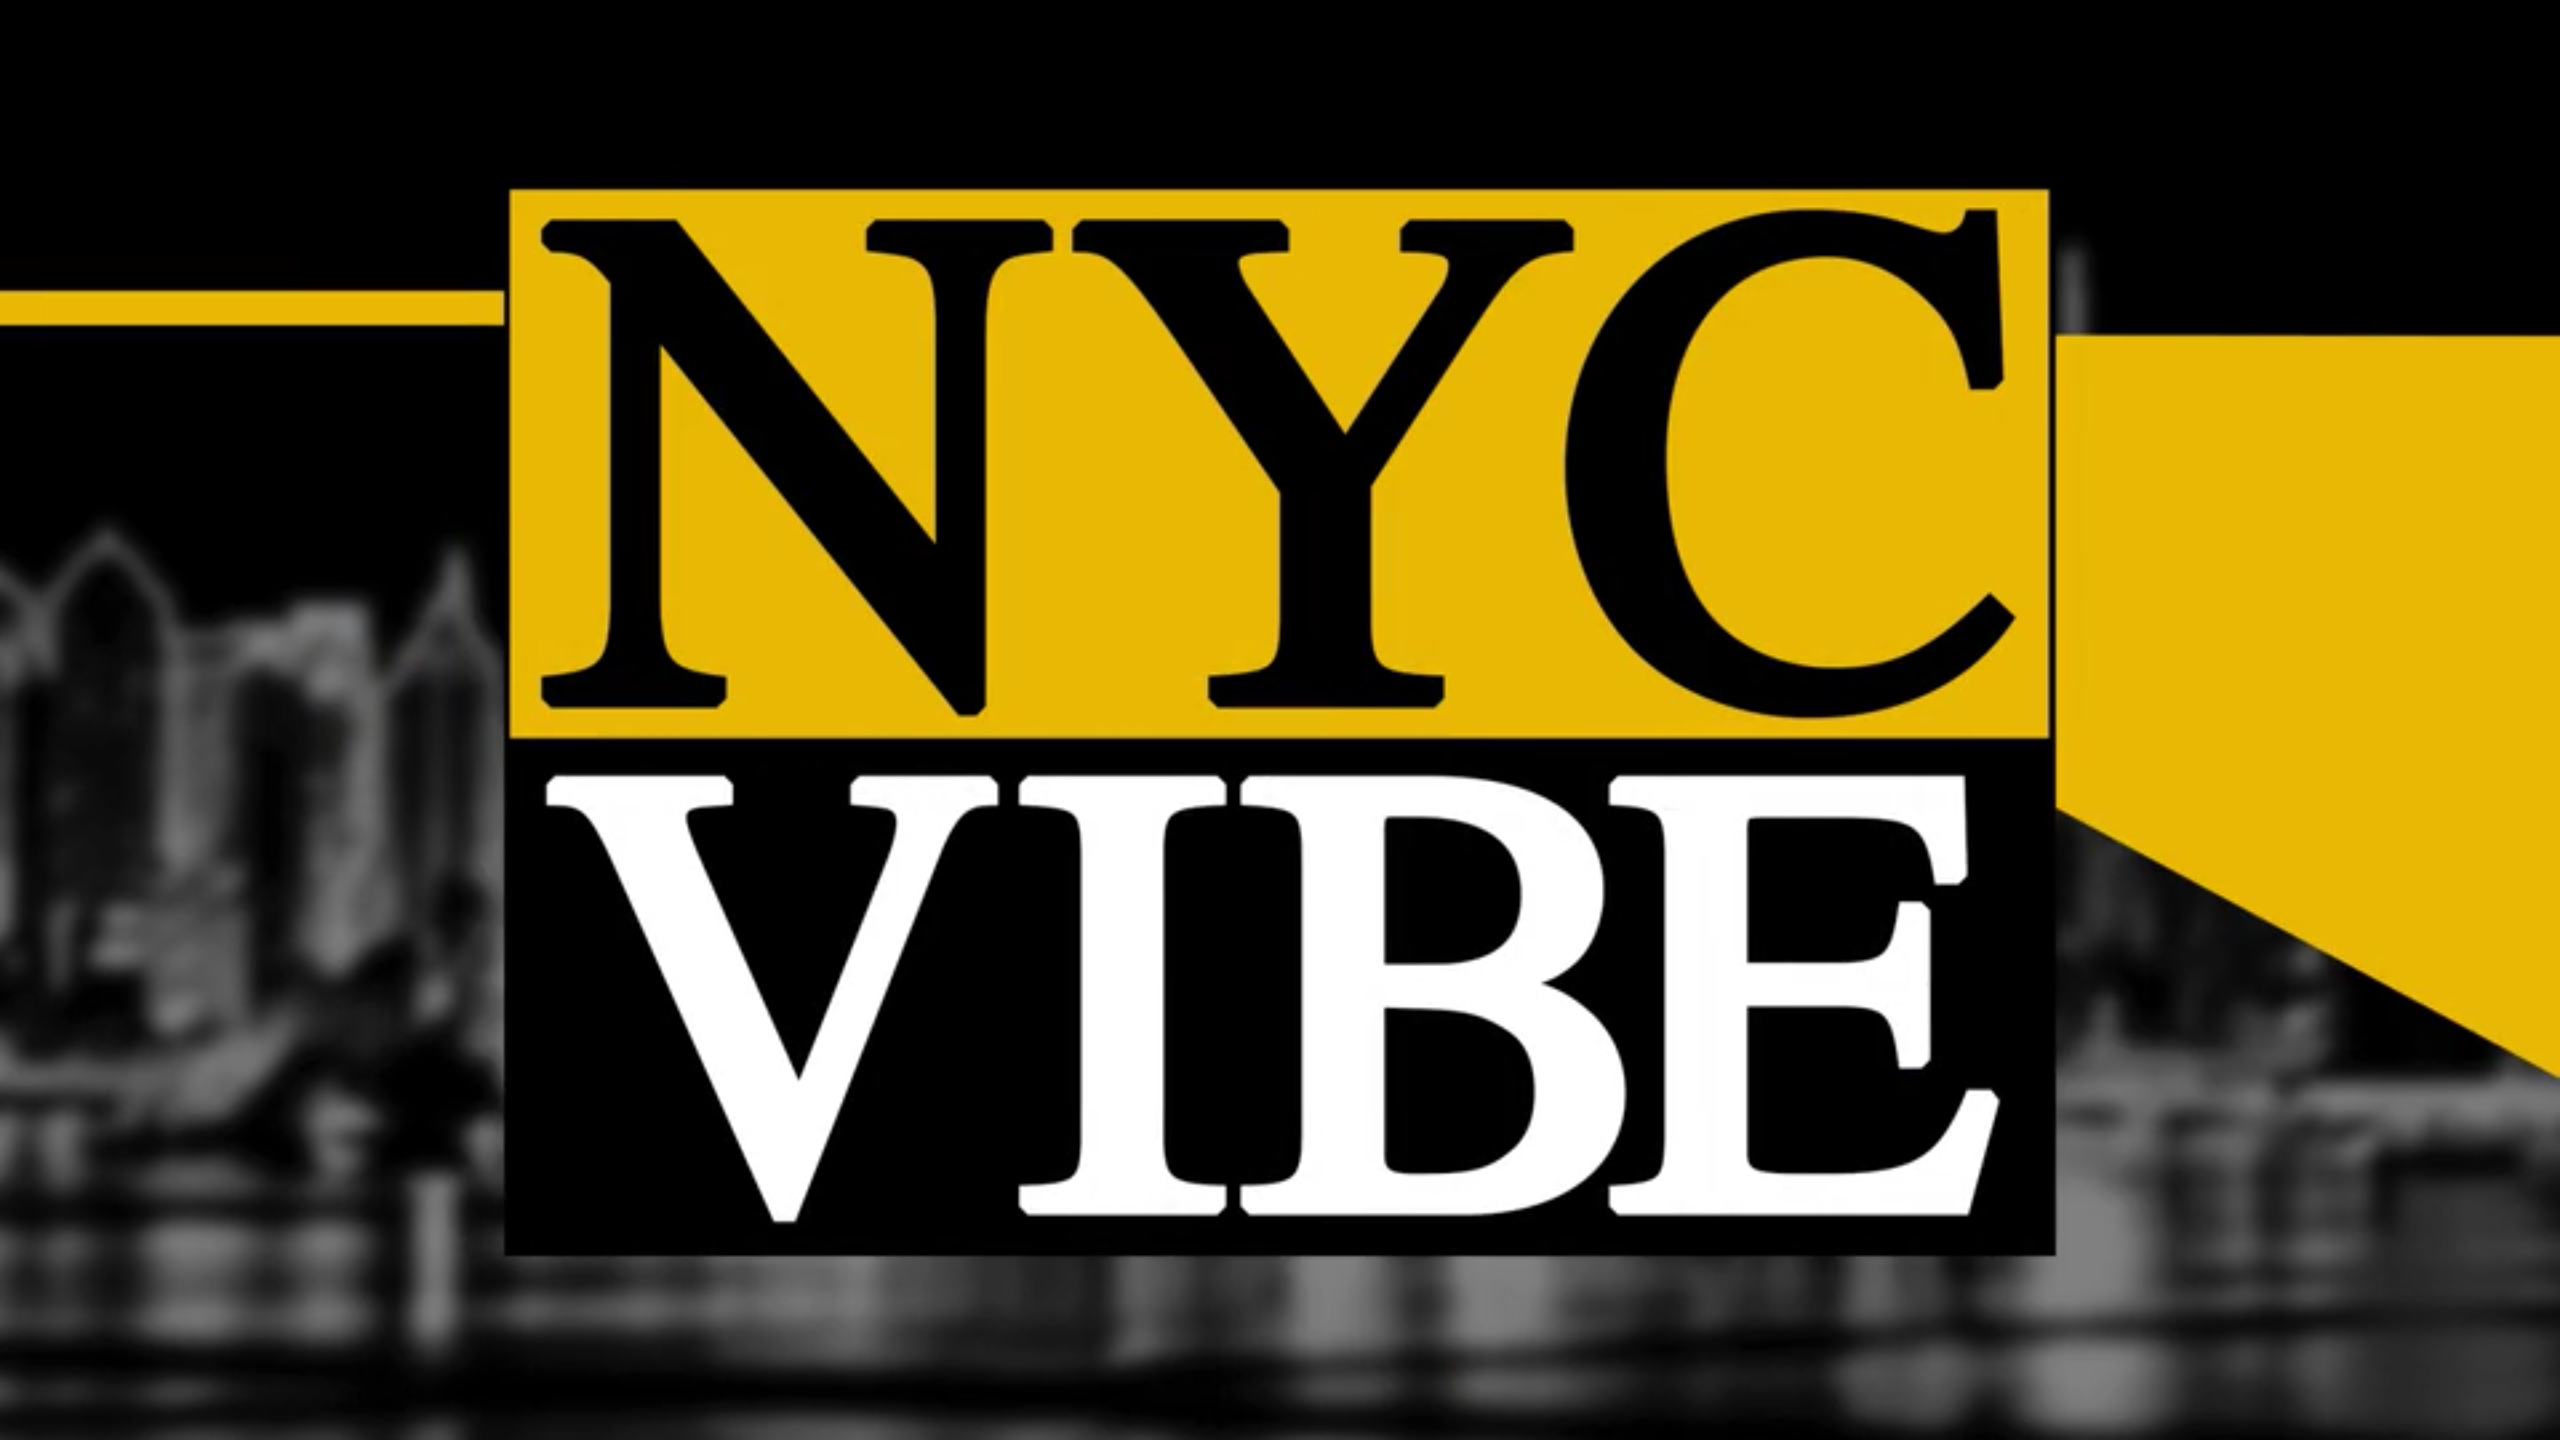 Produced By The Bader Media Group, For Nearly Thirty Years Discovering And  Exploring The Richness Of NYC.